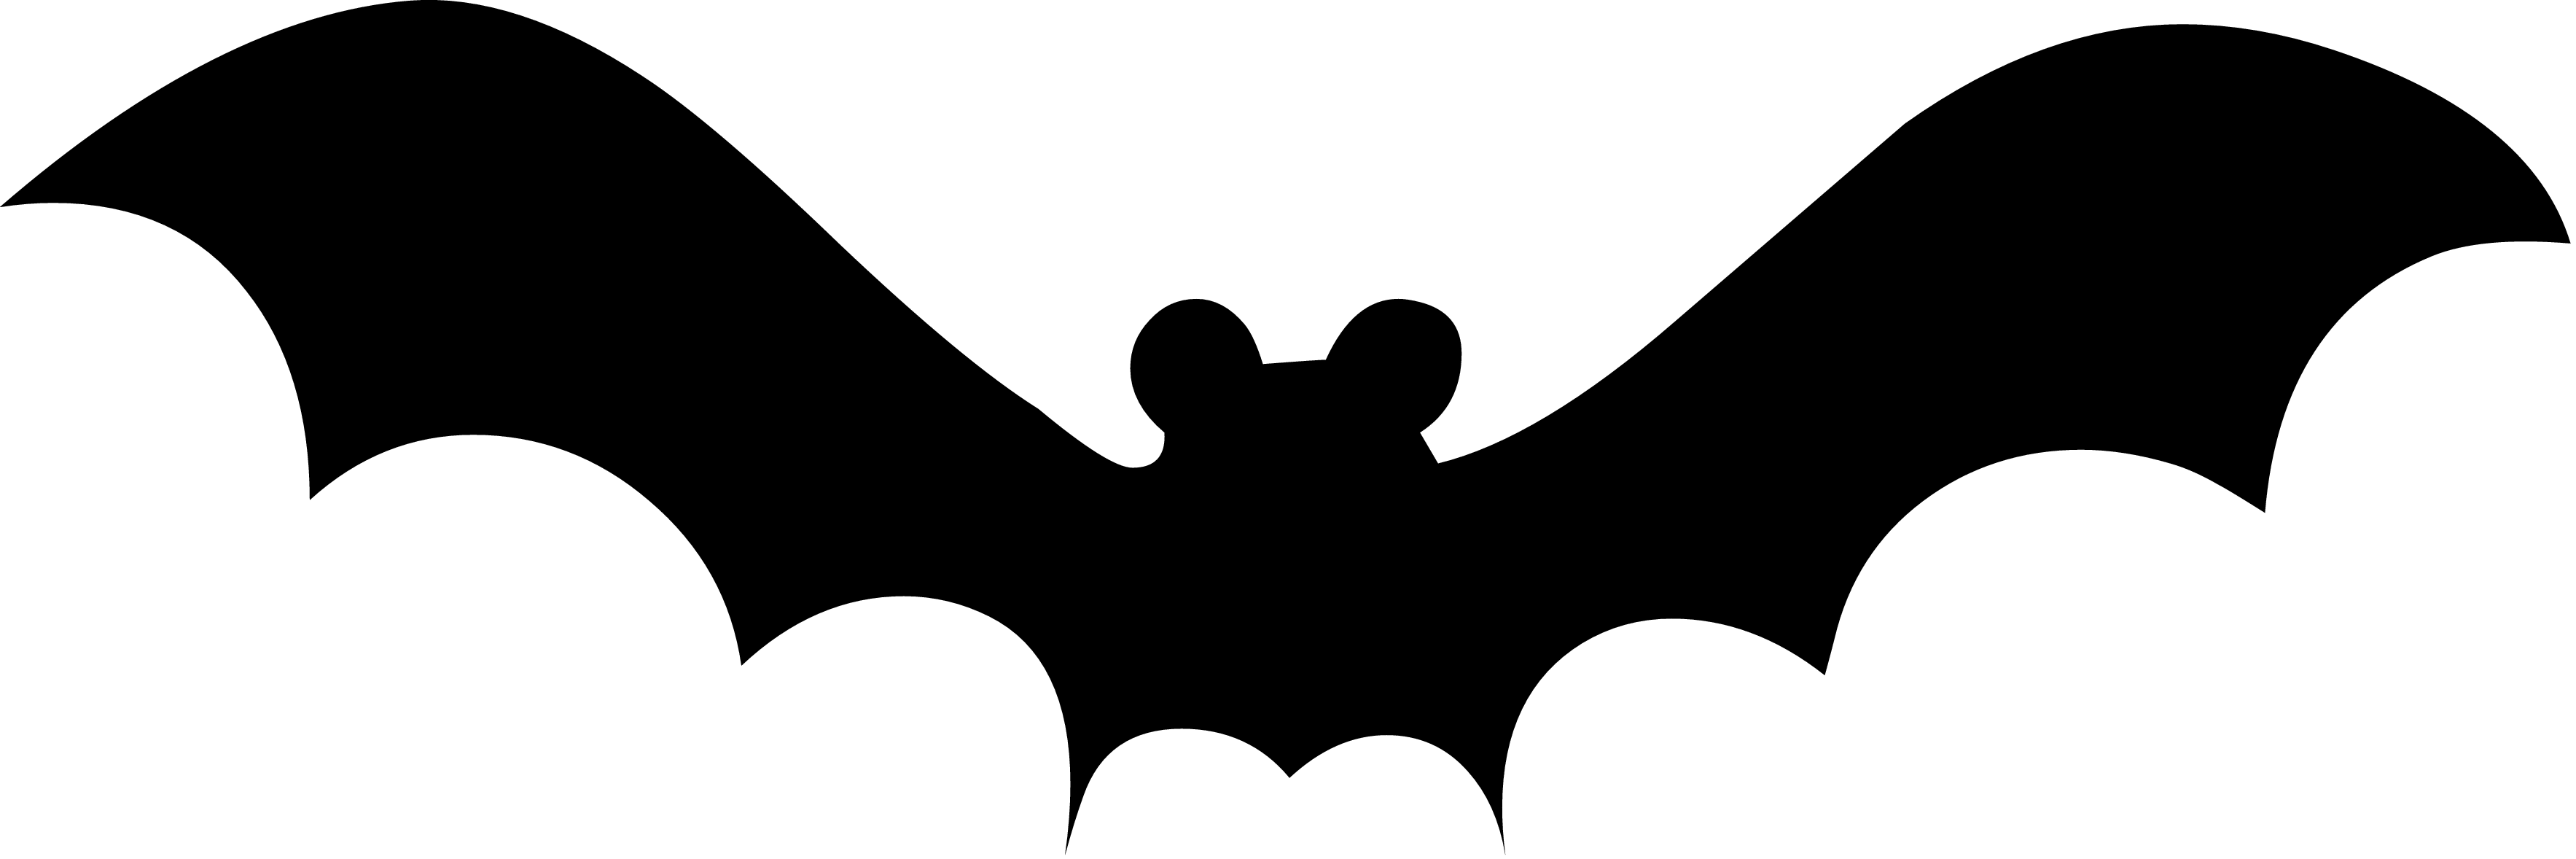 Bat Outline Template Viewing Gallery